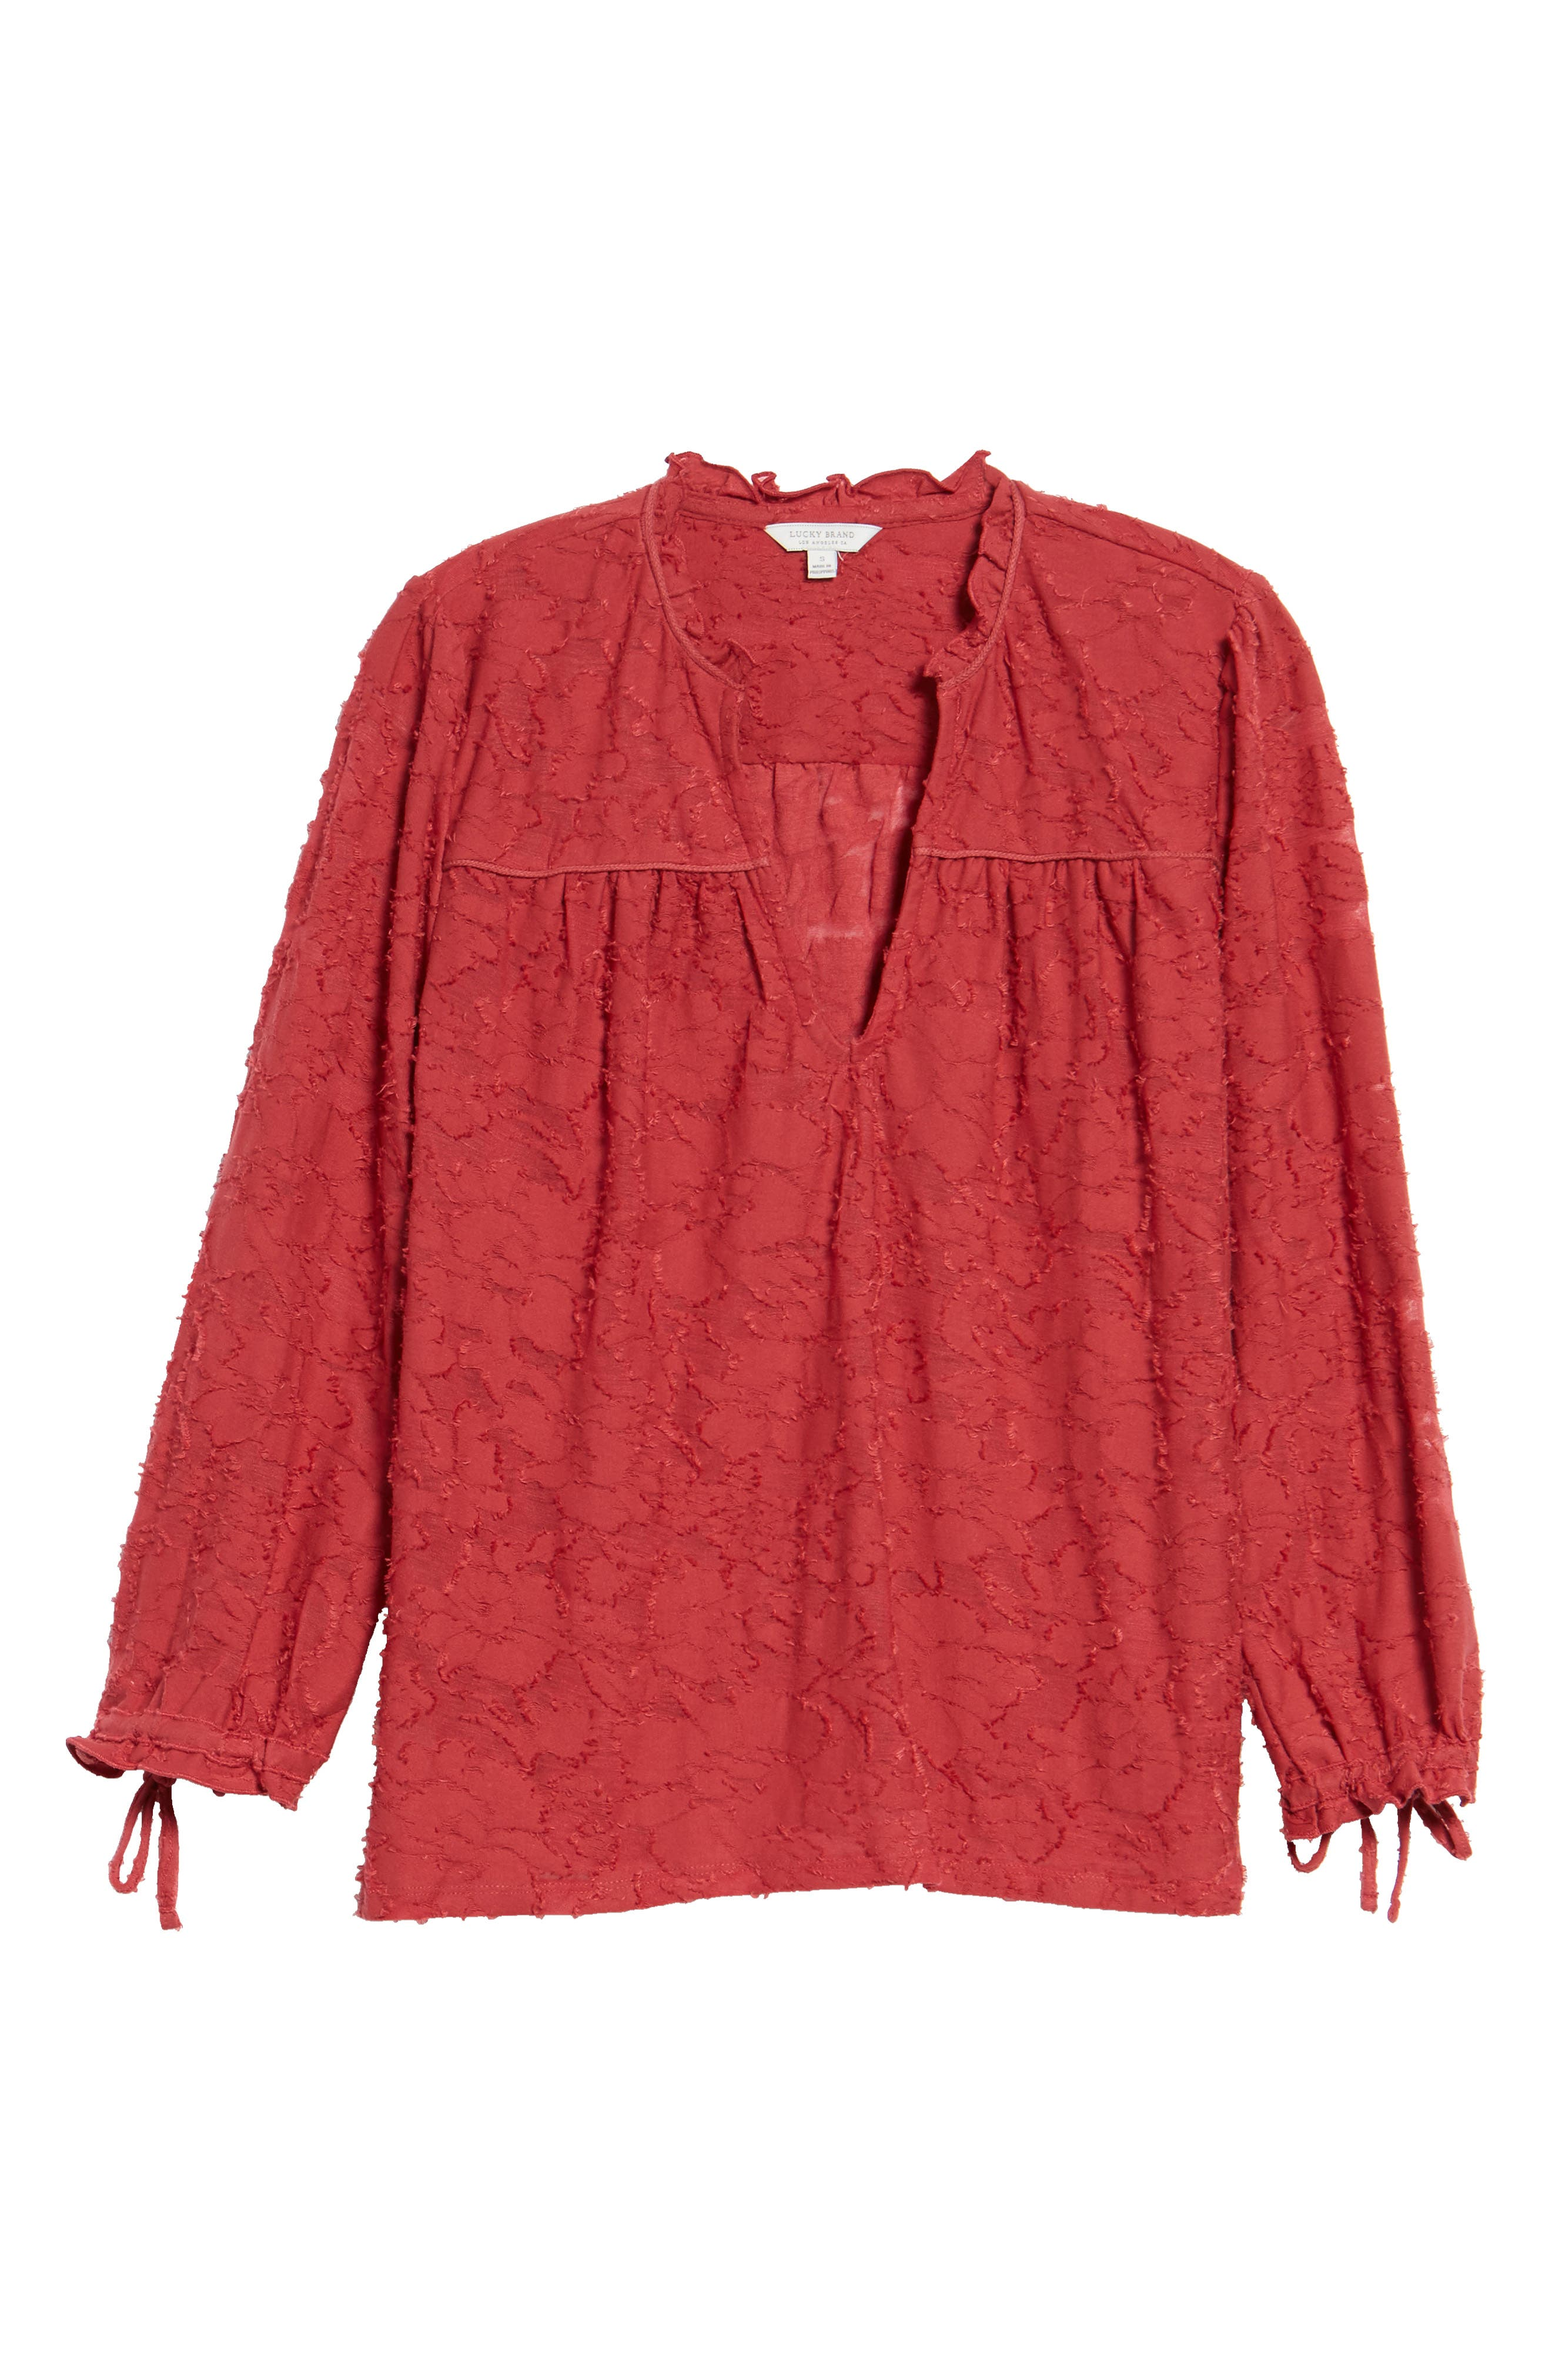 Floral Clipped Jacquard Top,                         Main,                         color, Earth Red